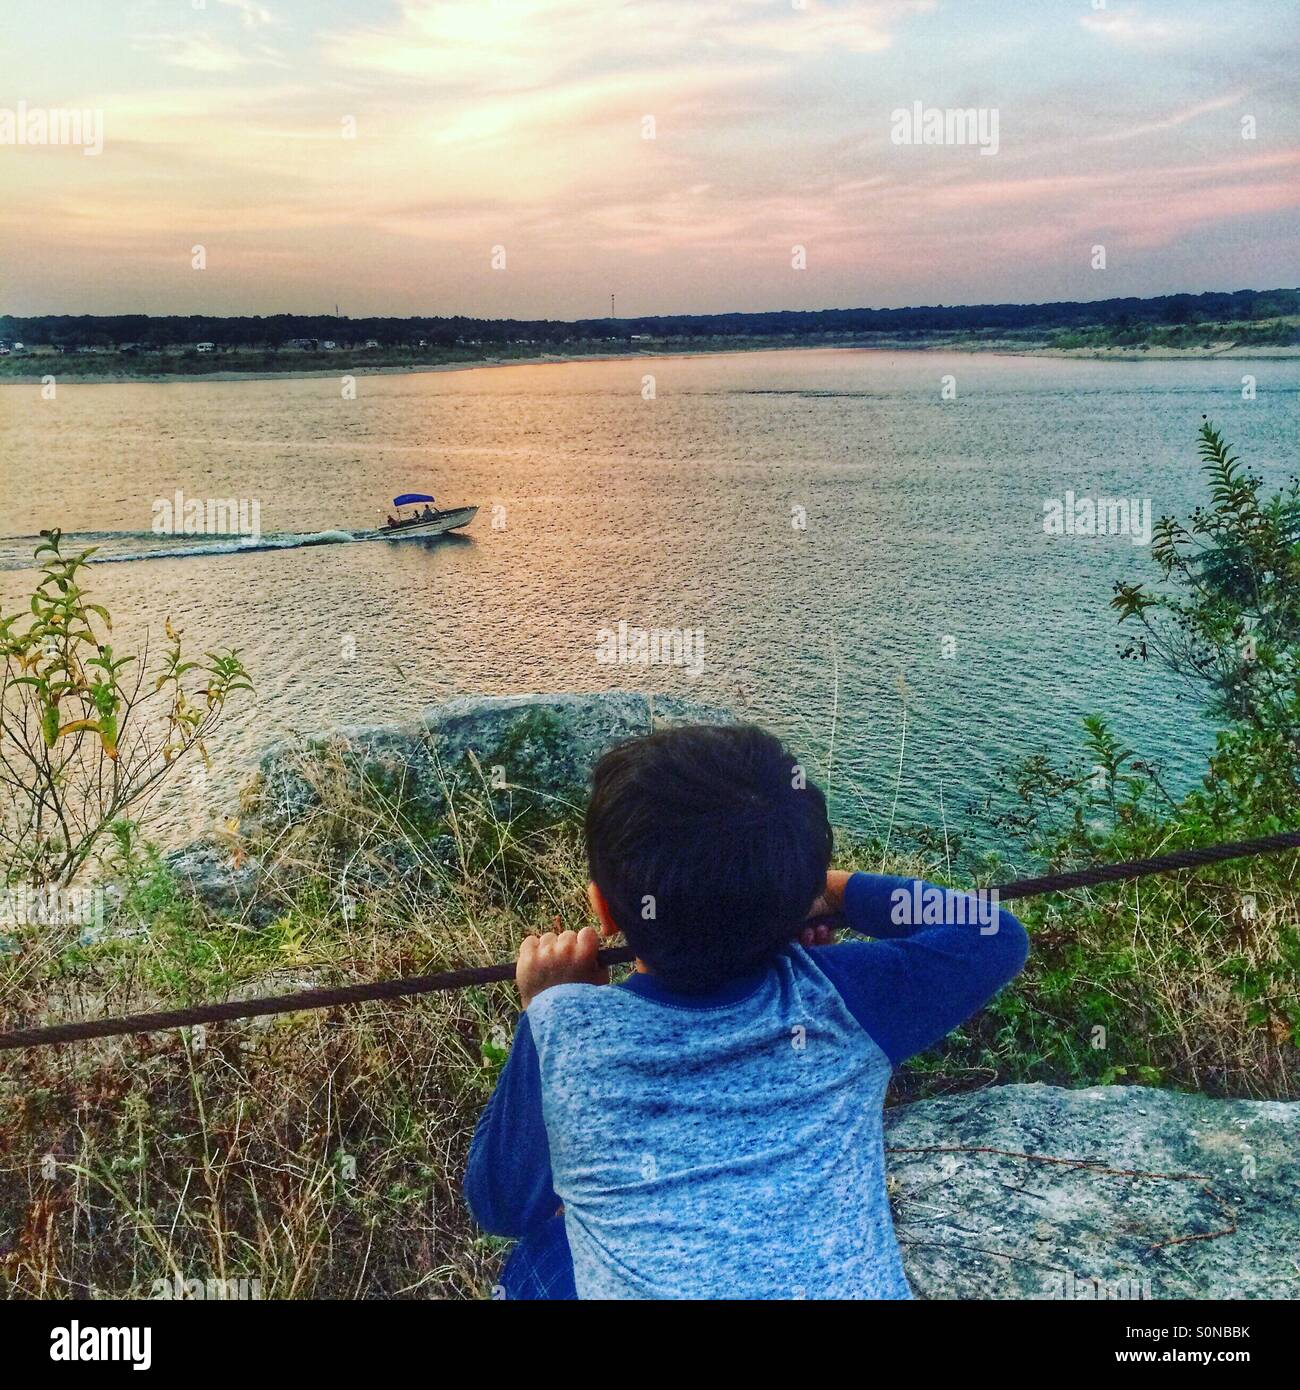 Boy watches the boats pass by - Stock Image